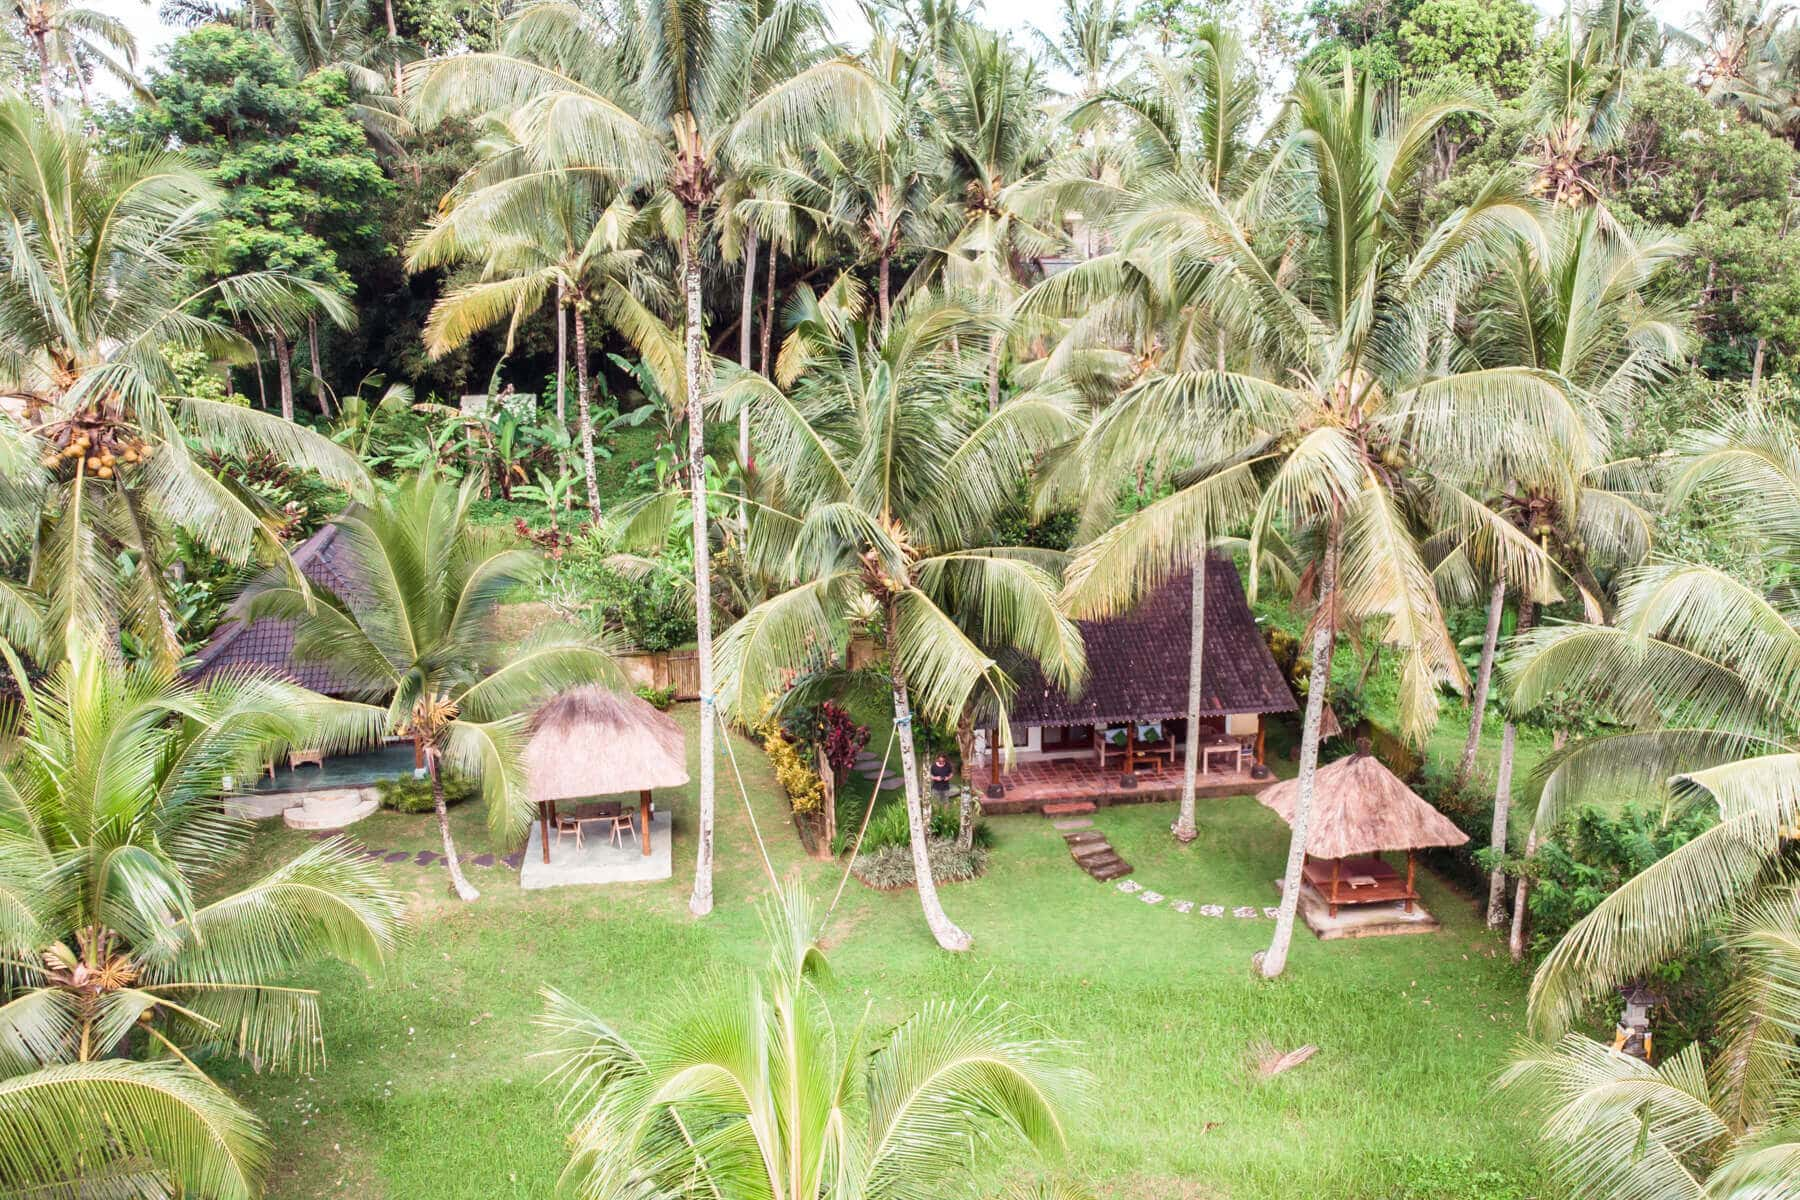 Island Life #4 - Our awesome Airbnb in Ubud